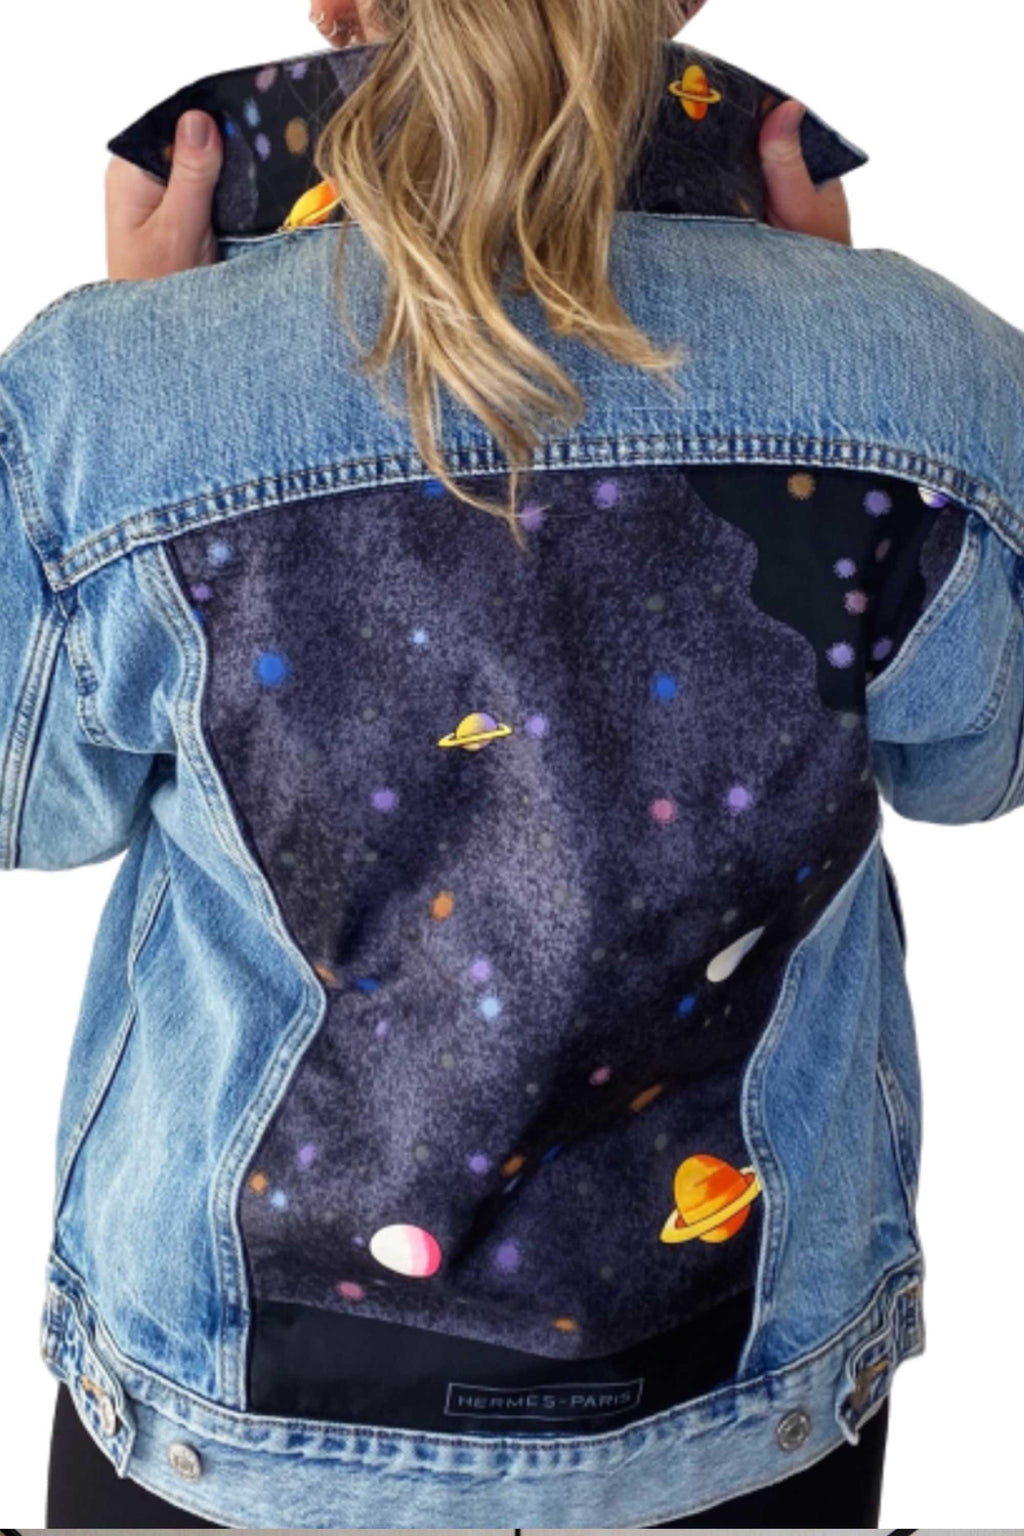 DENIM JACKET WITH HERMES PRINT SCARF - BLUE MULTI